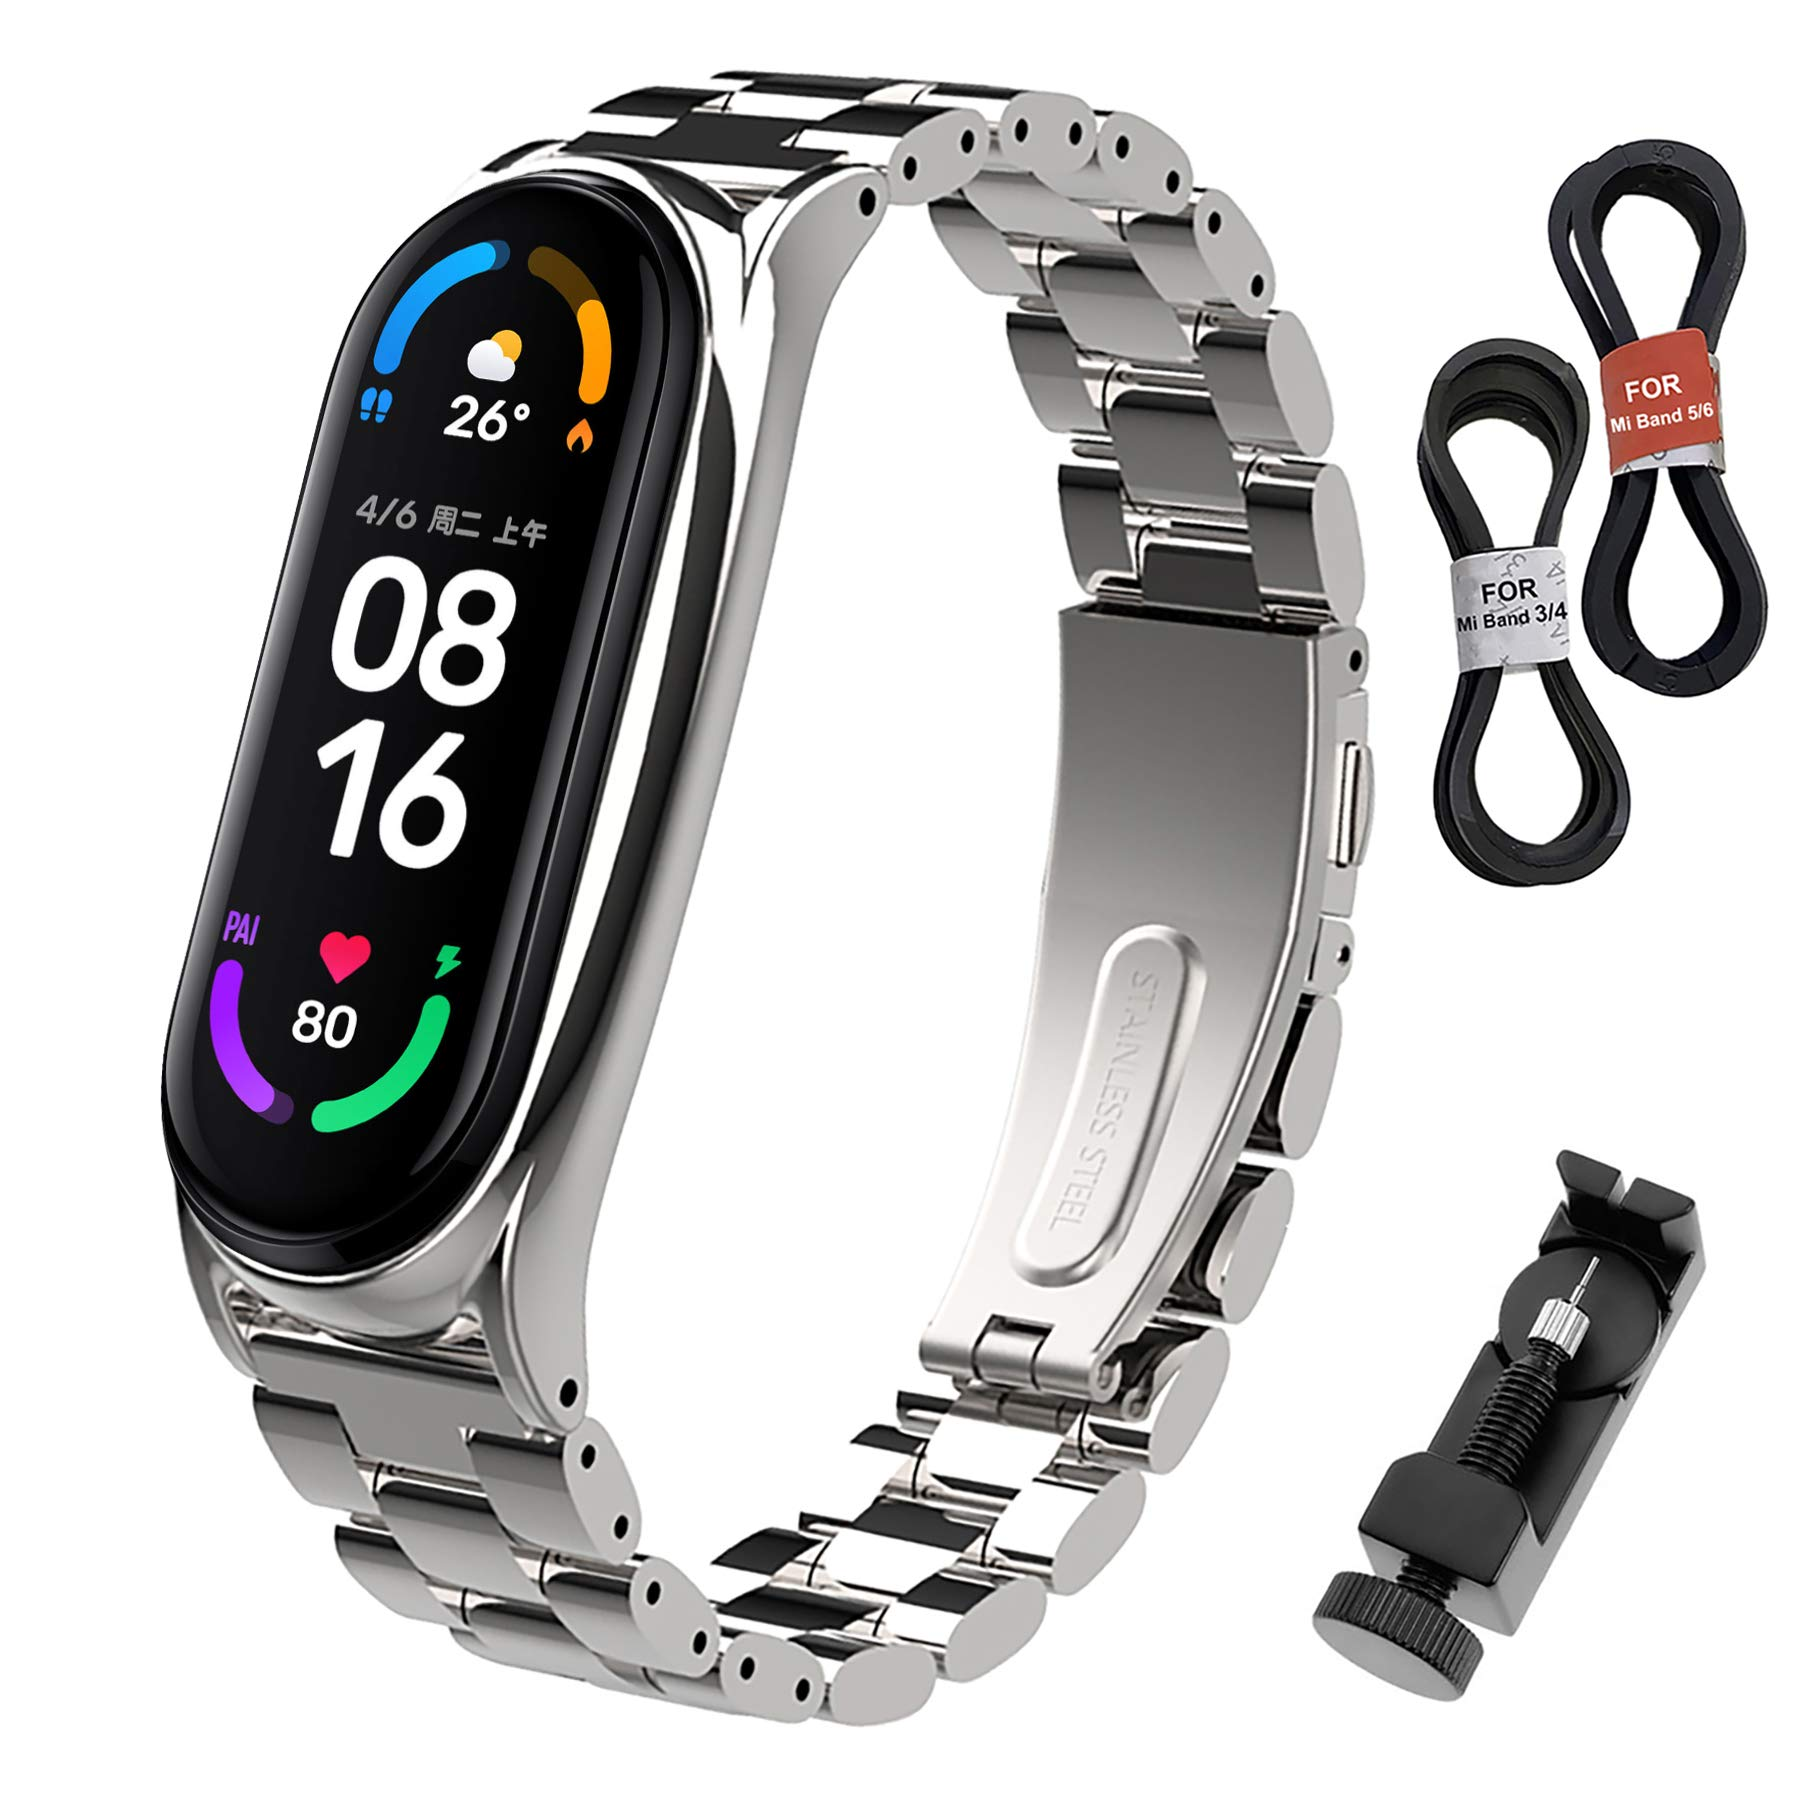 BDIG Mi Band 6 Straps Bracelet Replacement, MiBand 5 Stainless Steel Metal Wrist Strap Wristband WatchBand Accessories for Xiaomi Mi Band 4 Miband 3